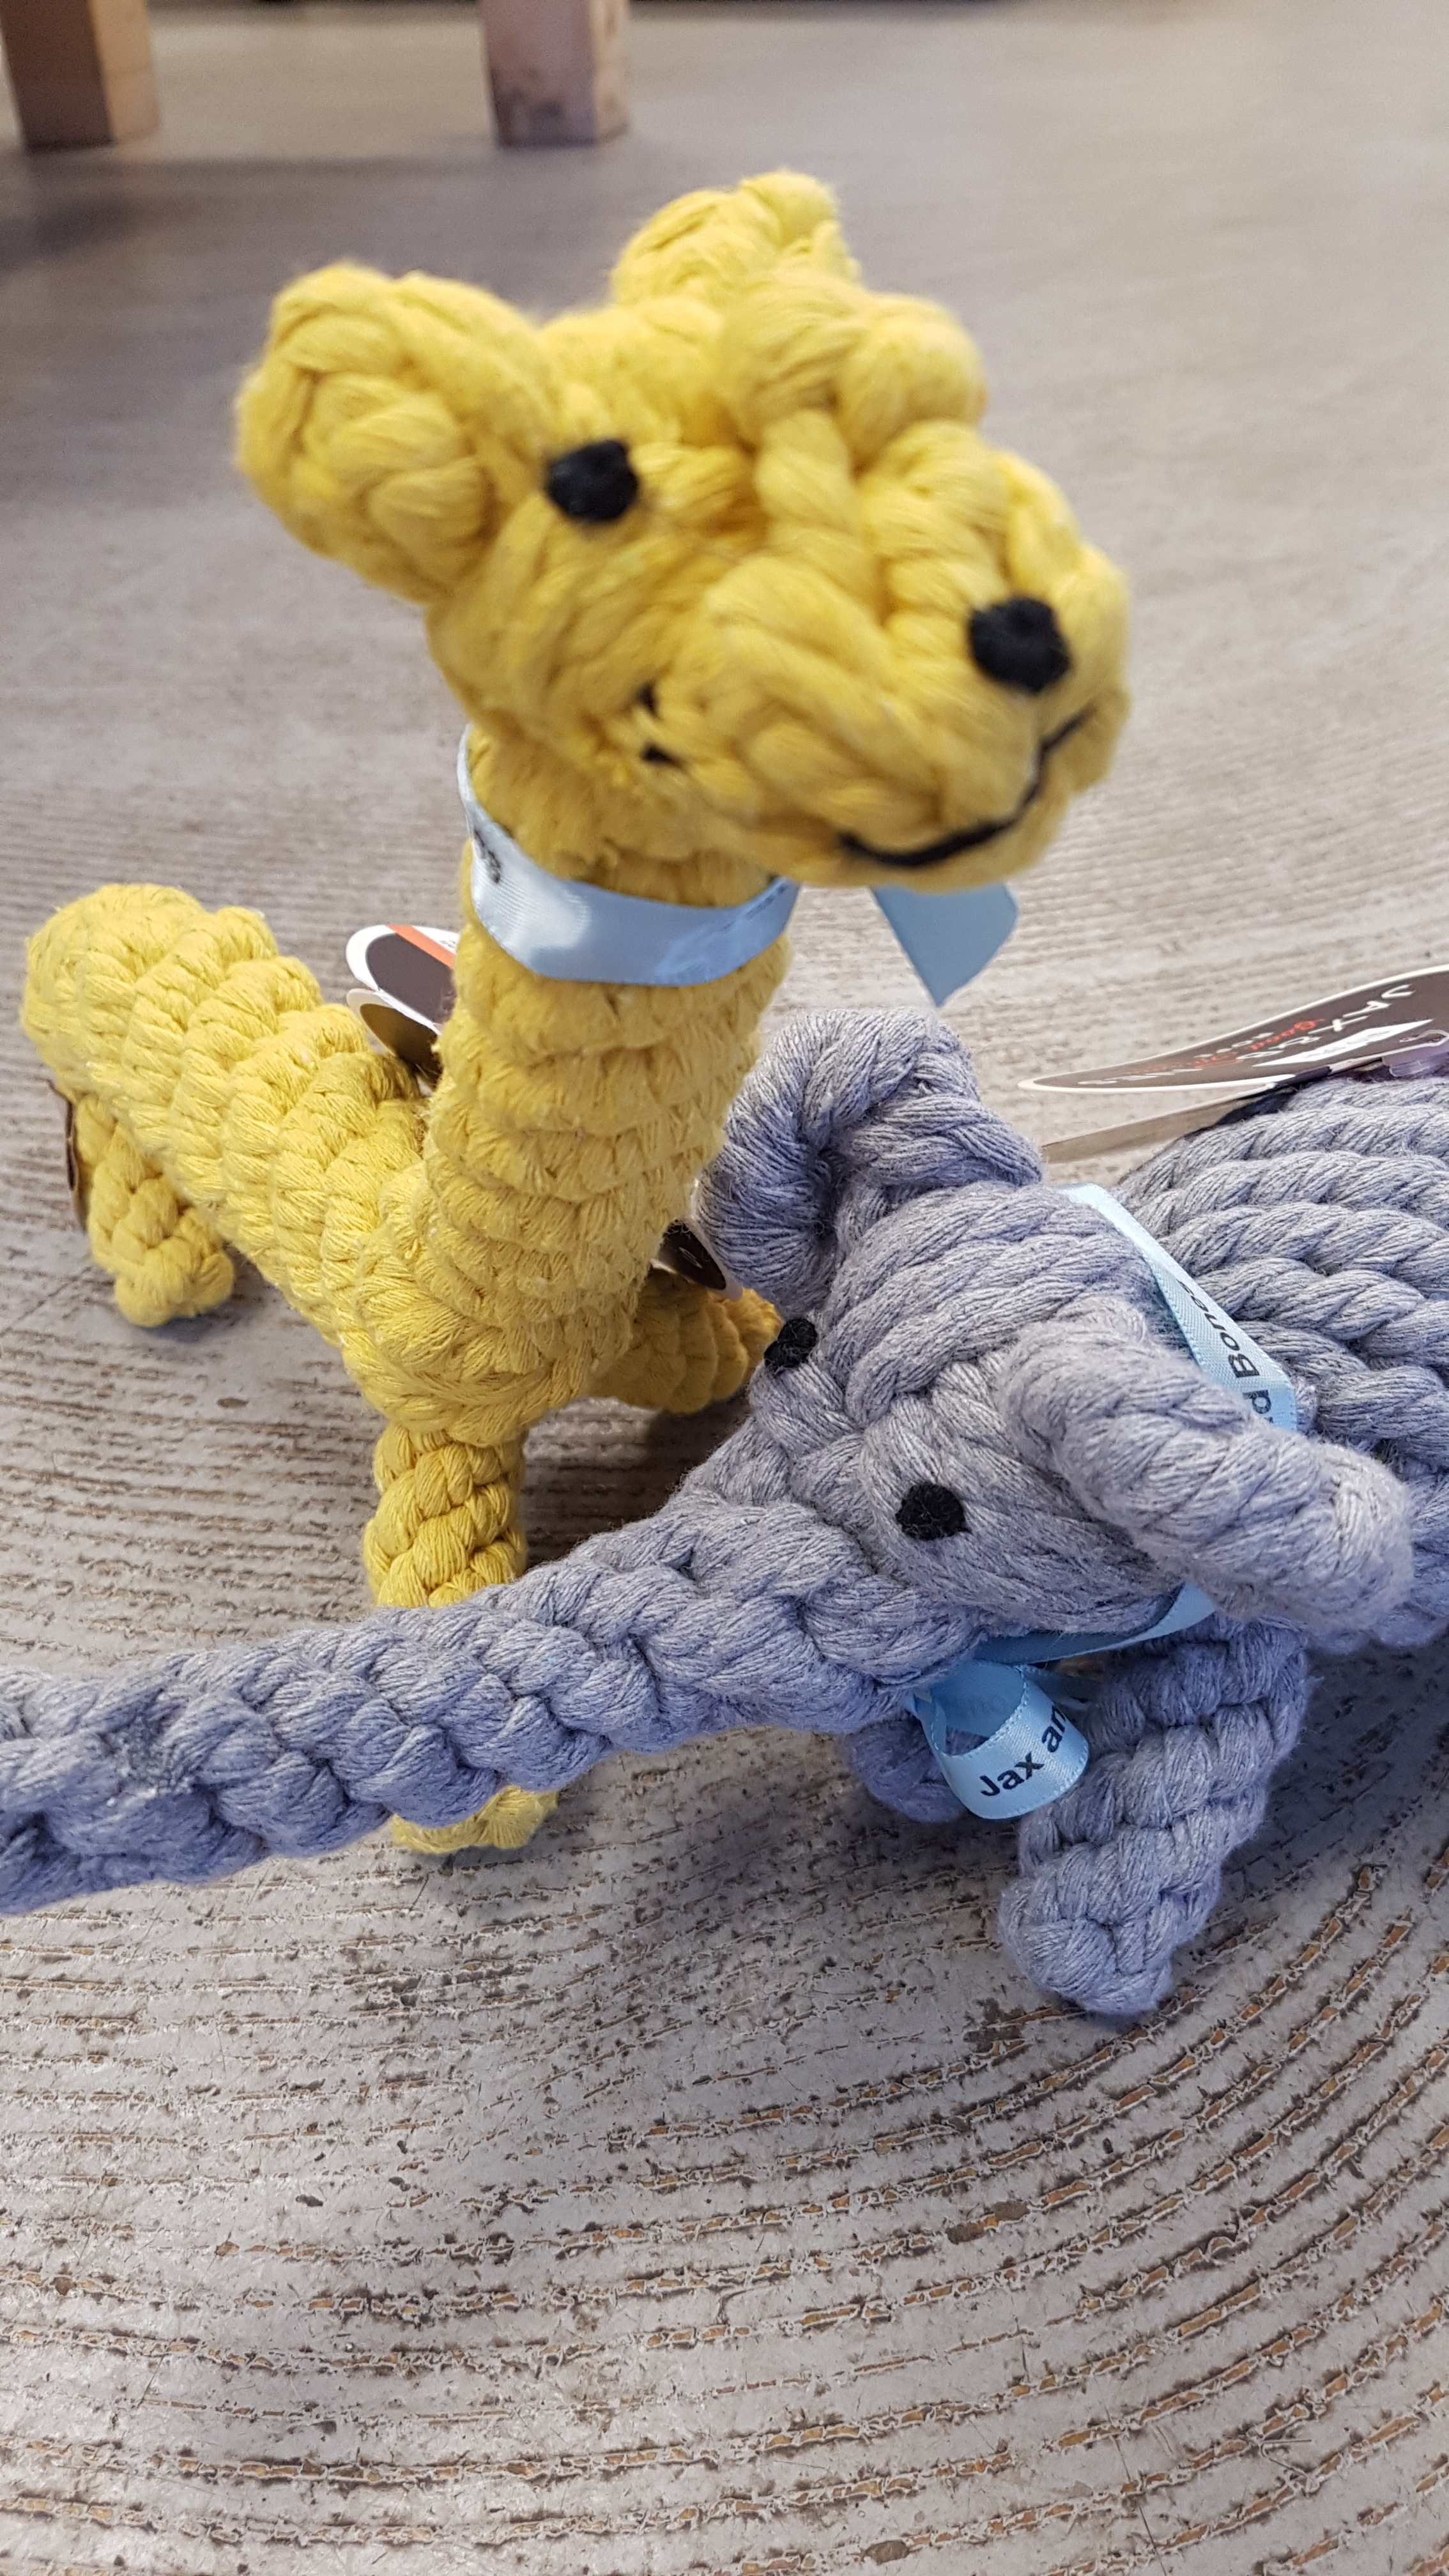 Giraffe and Elephant are happy to be made of sustainable rope.